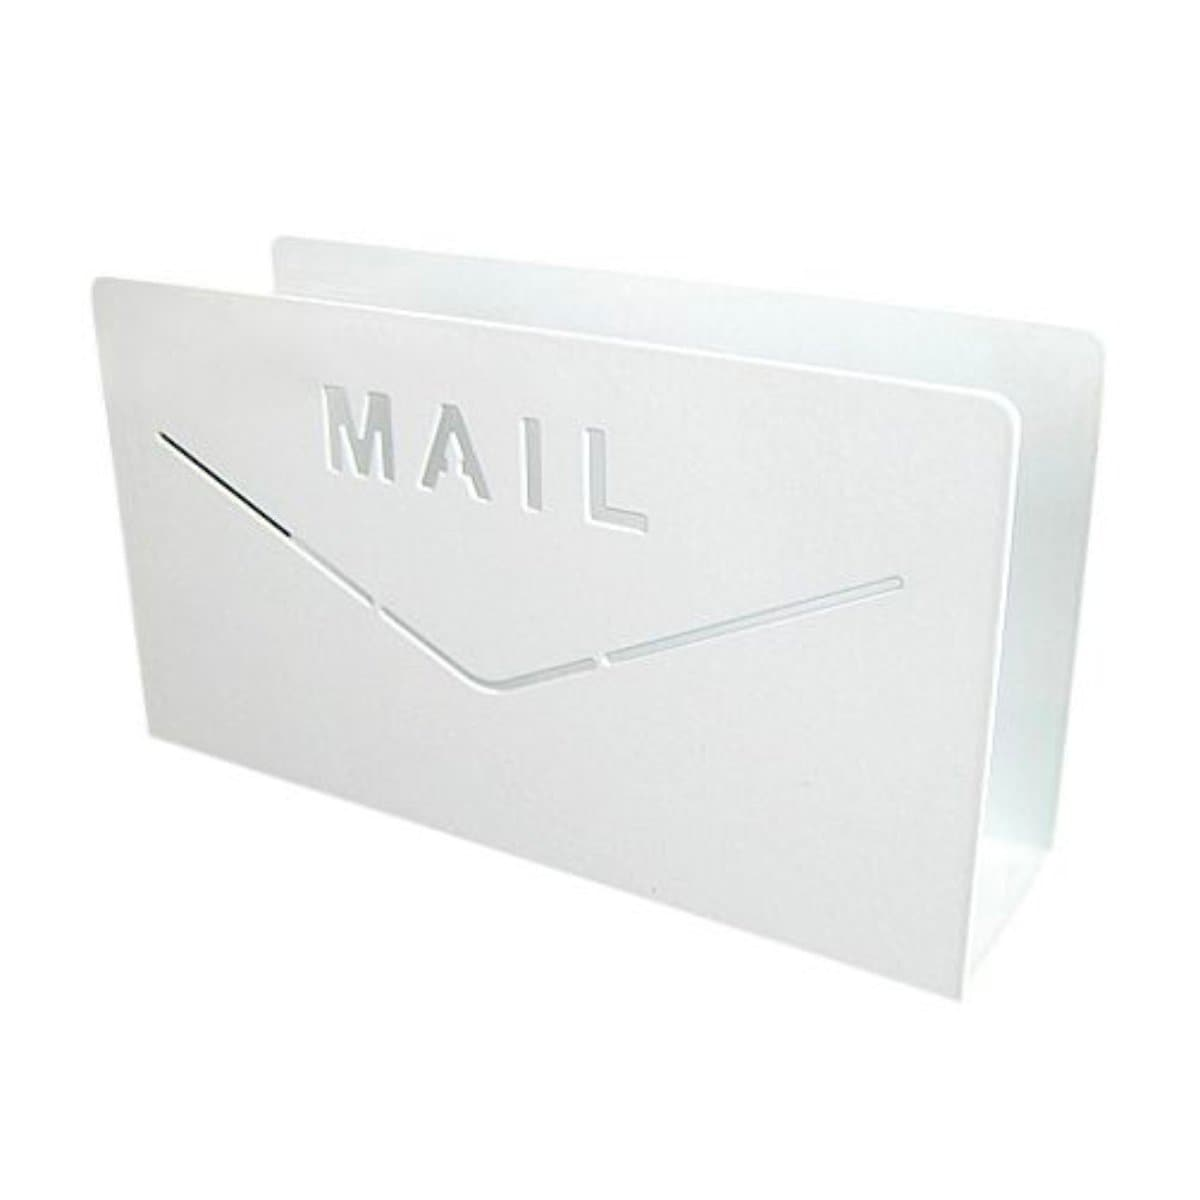 Trendform Letter Shelve MAIL, White